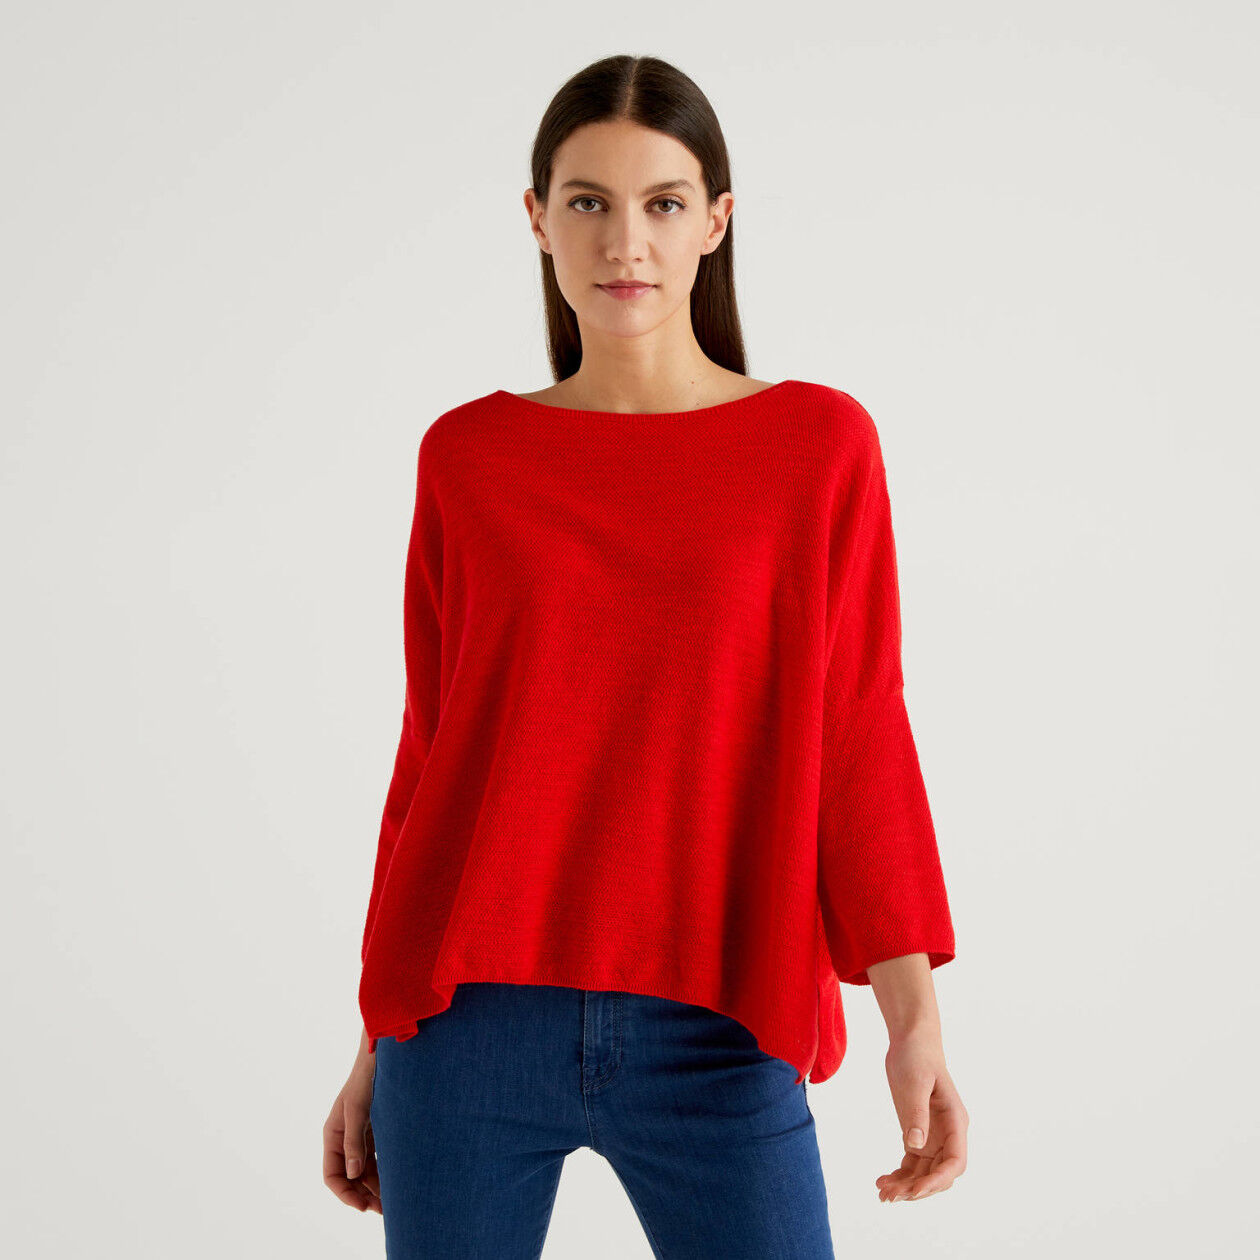 Sweater with slits